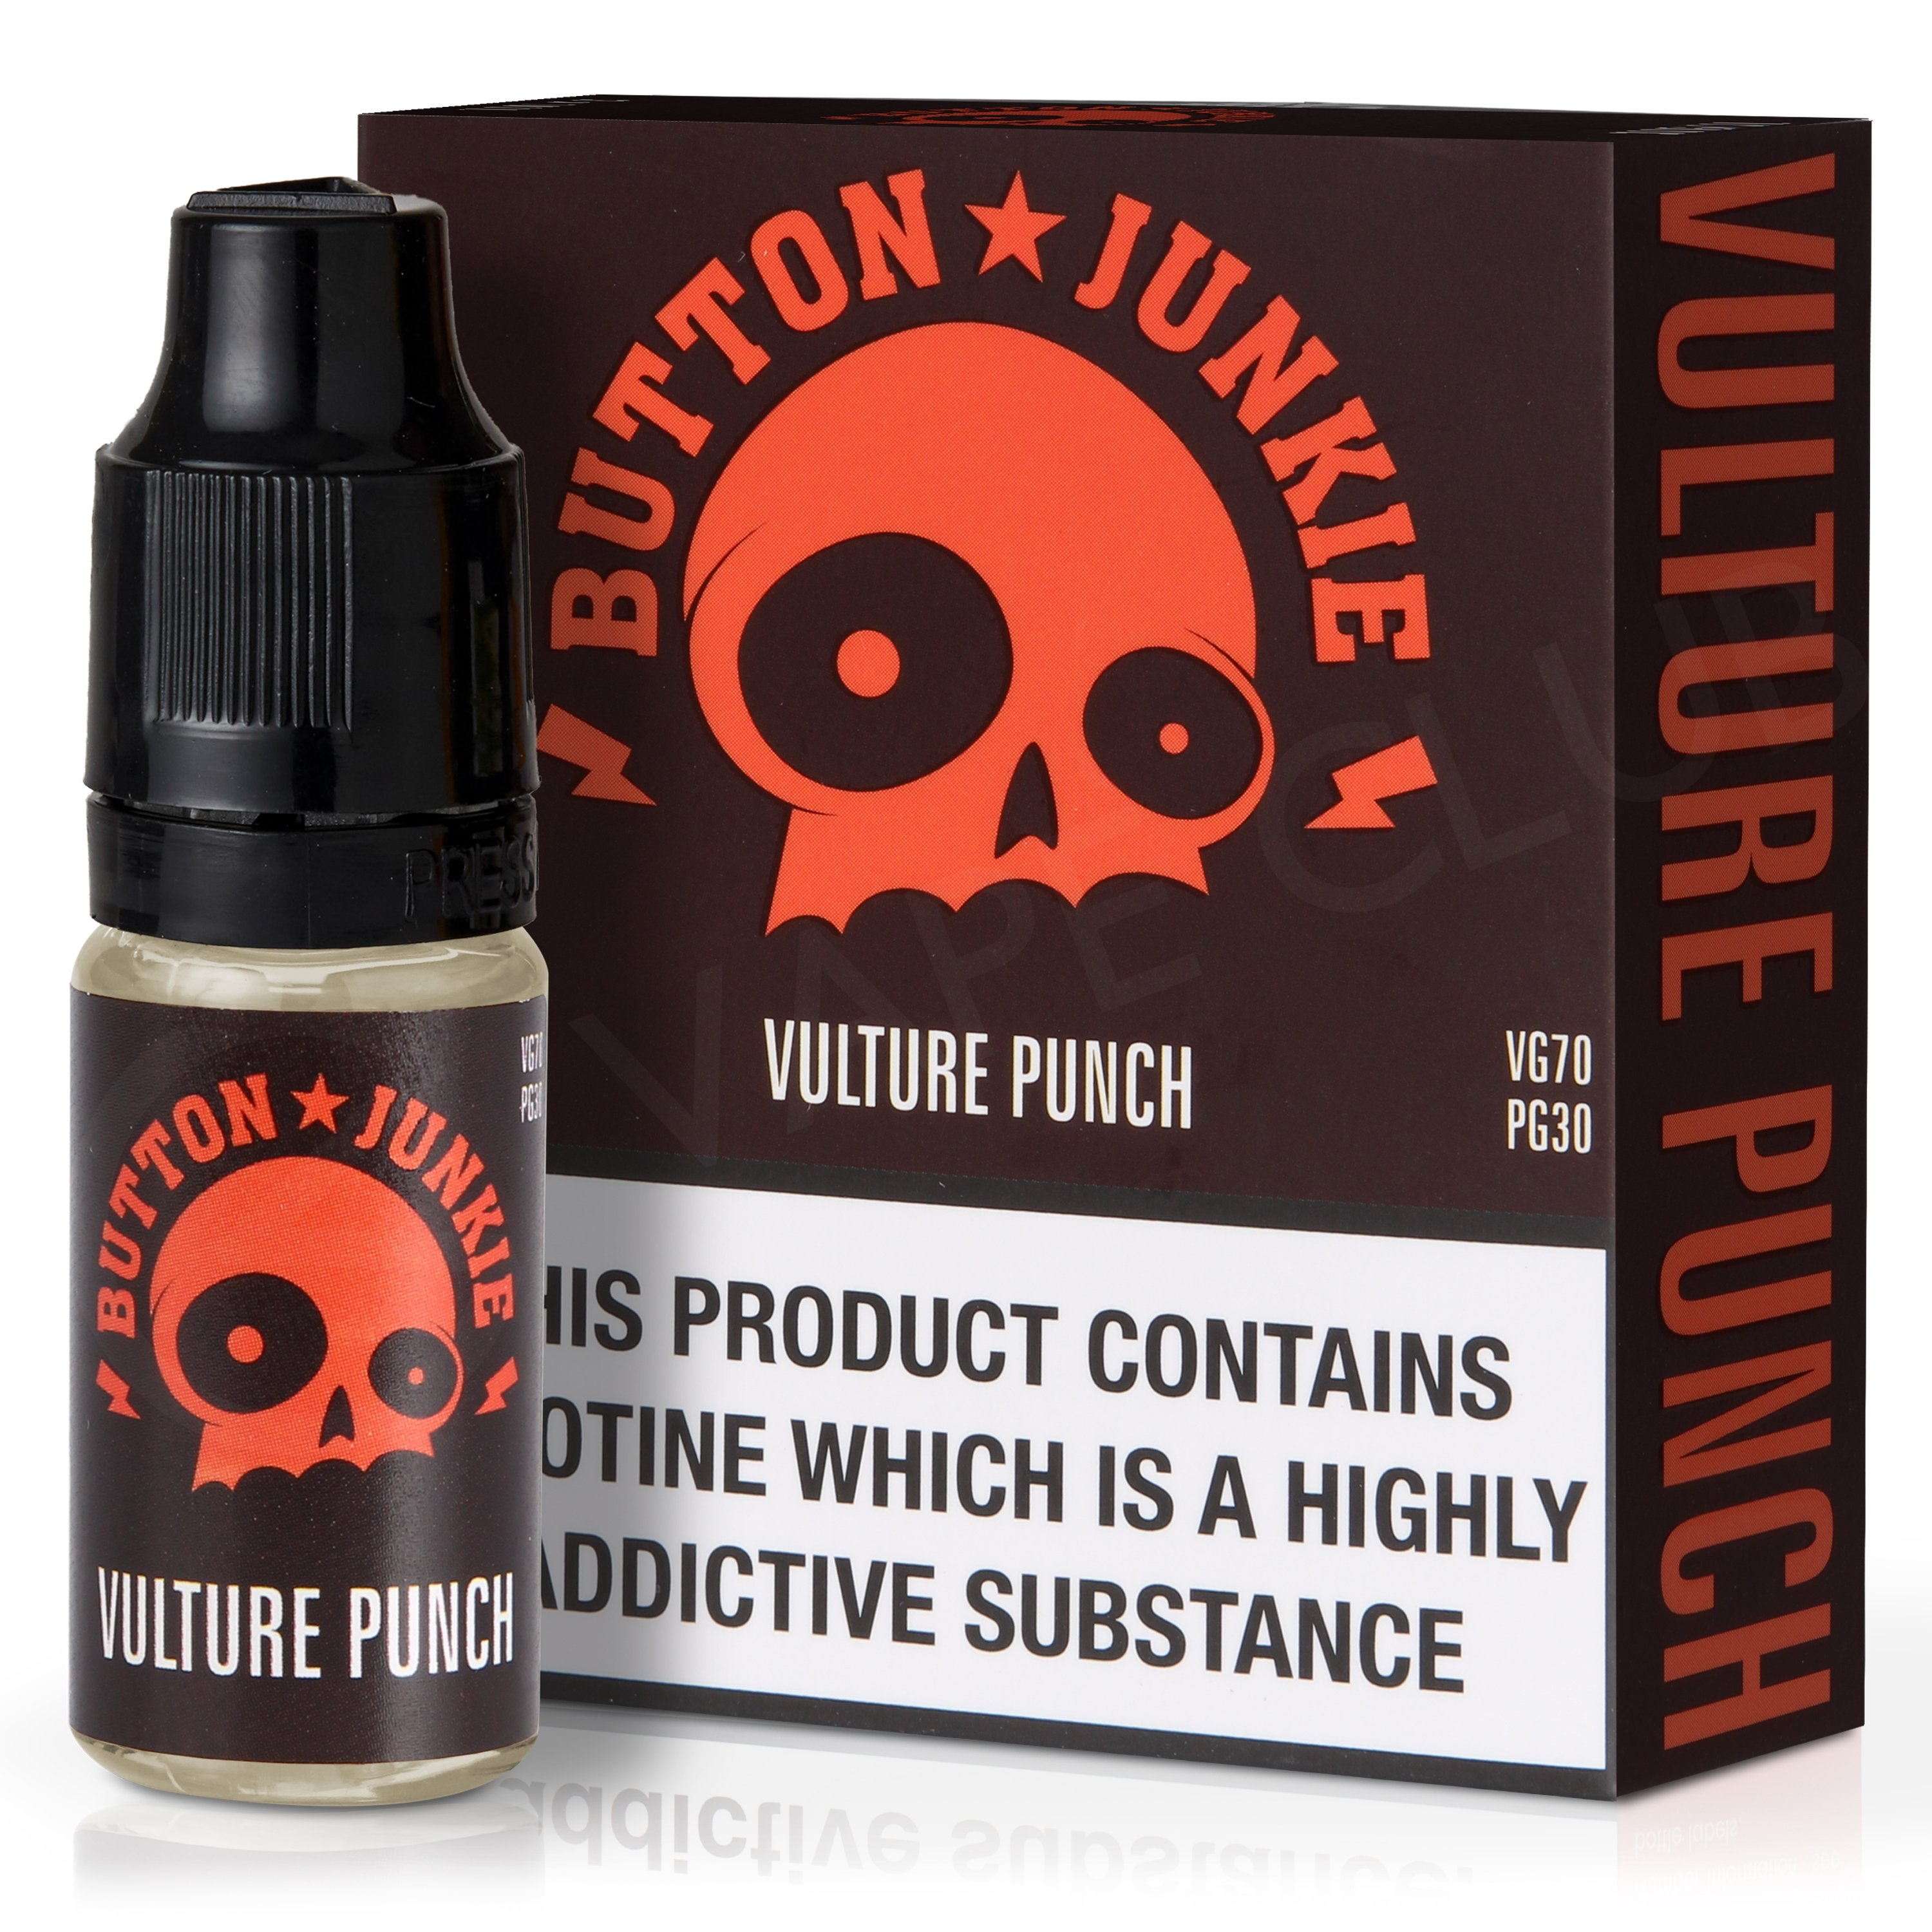 Vulture Punch E-Liquid by Button Junkie